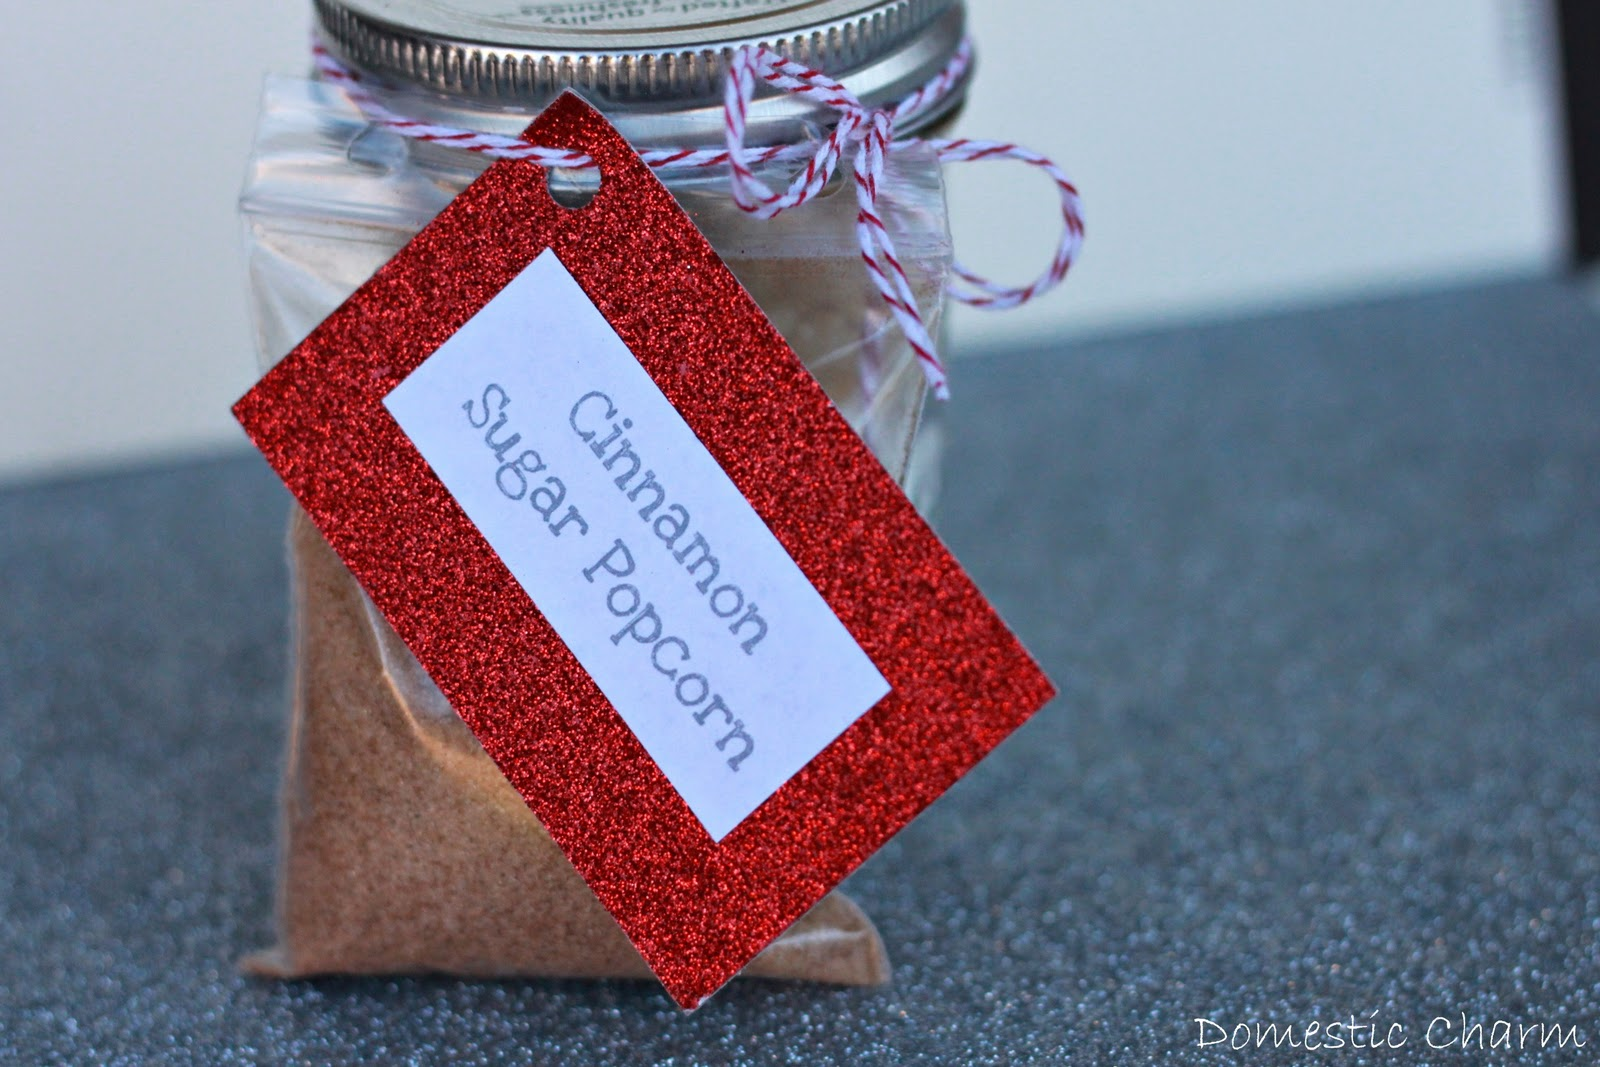 Domestic Charm: Cinnamon Sugar Popcorn Mason Jar Gifts